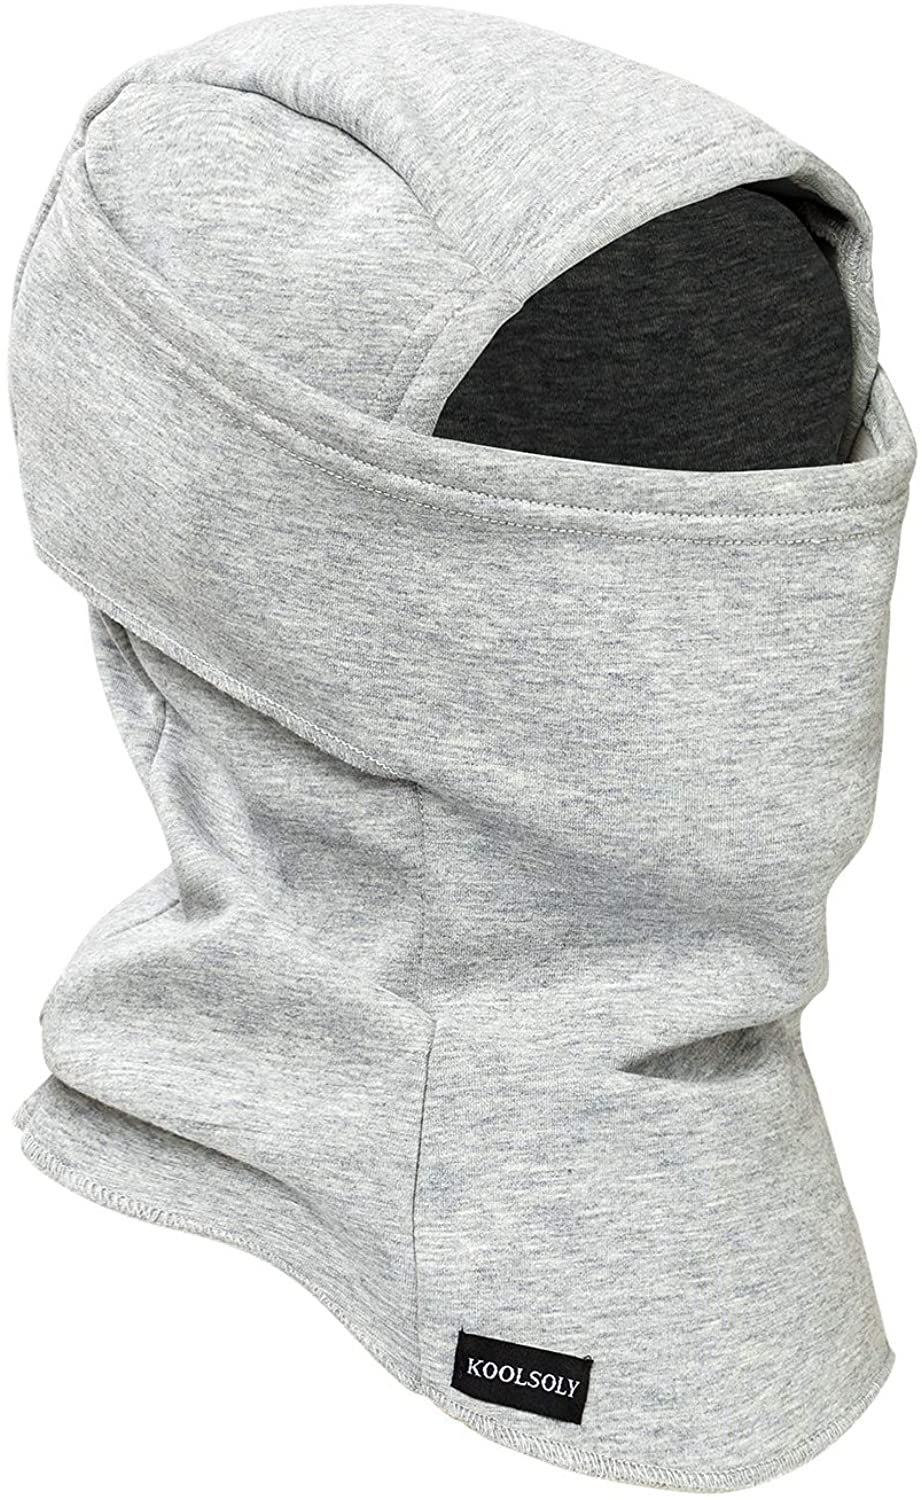 Balaclava Ski Mask,Warm and Windproof Fleece Winter Sports Cap,for Men Women…